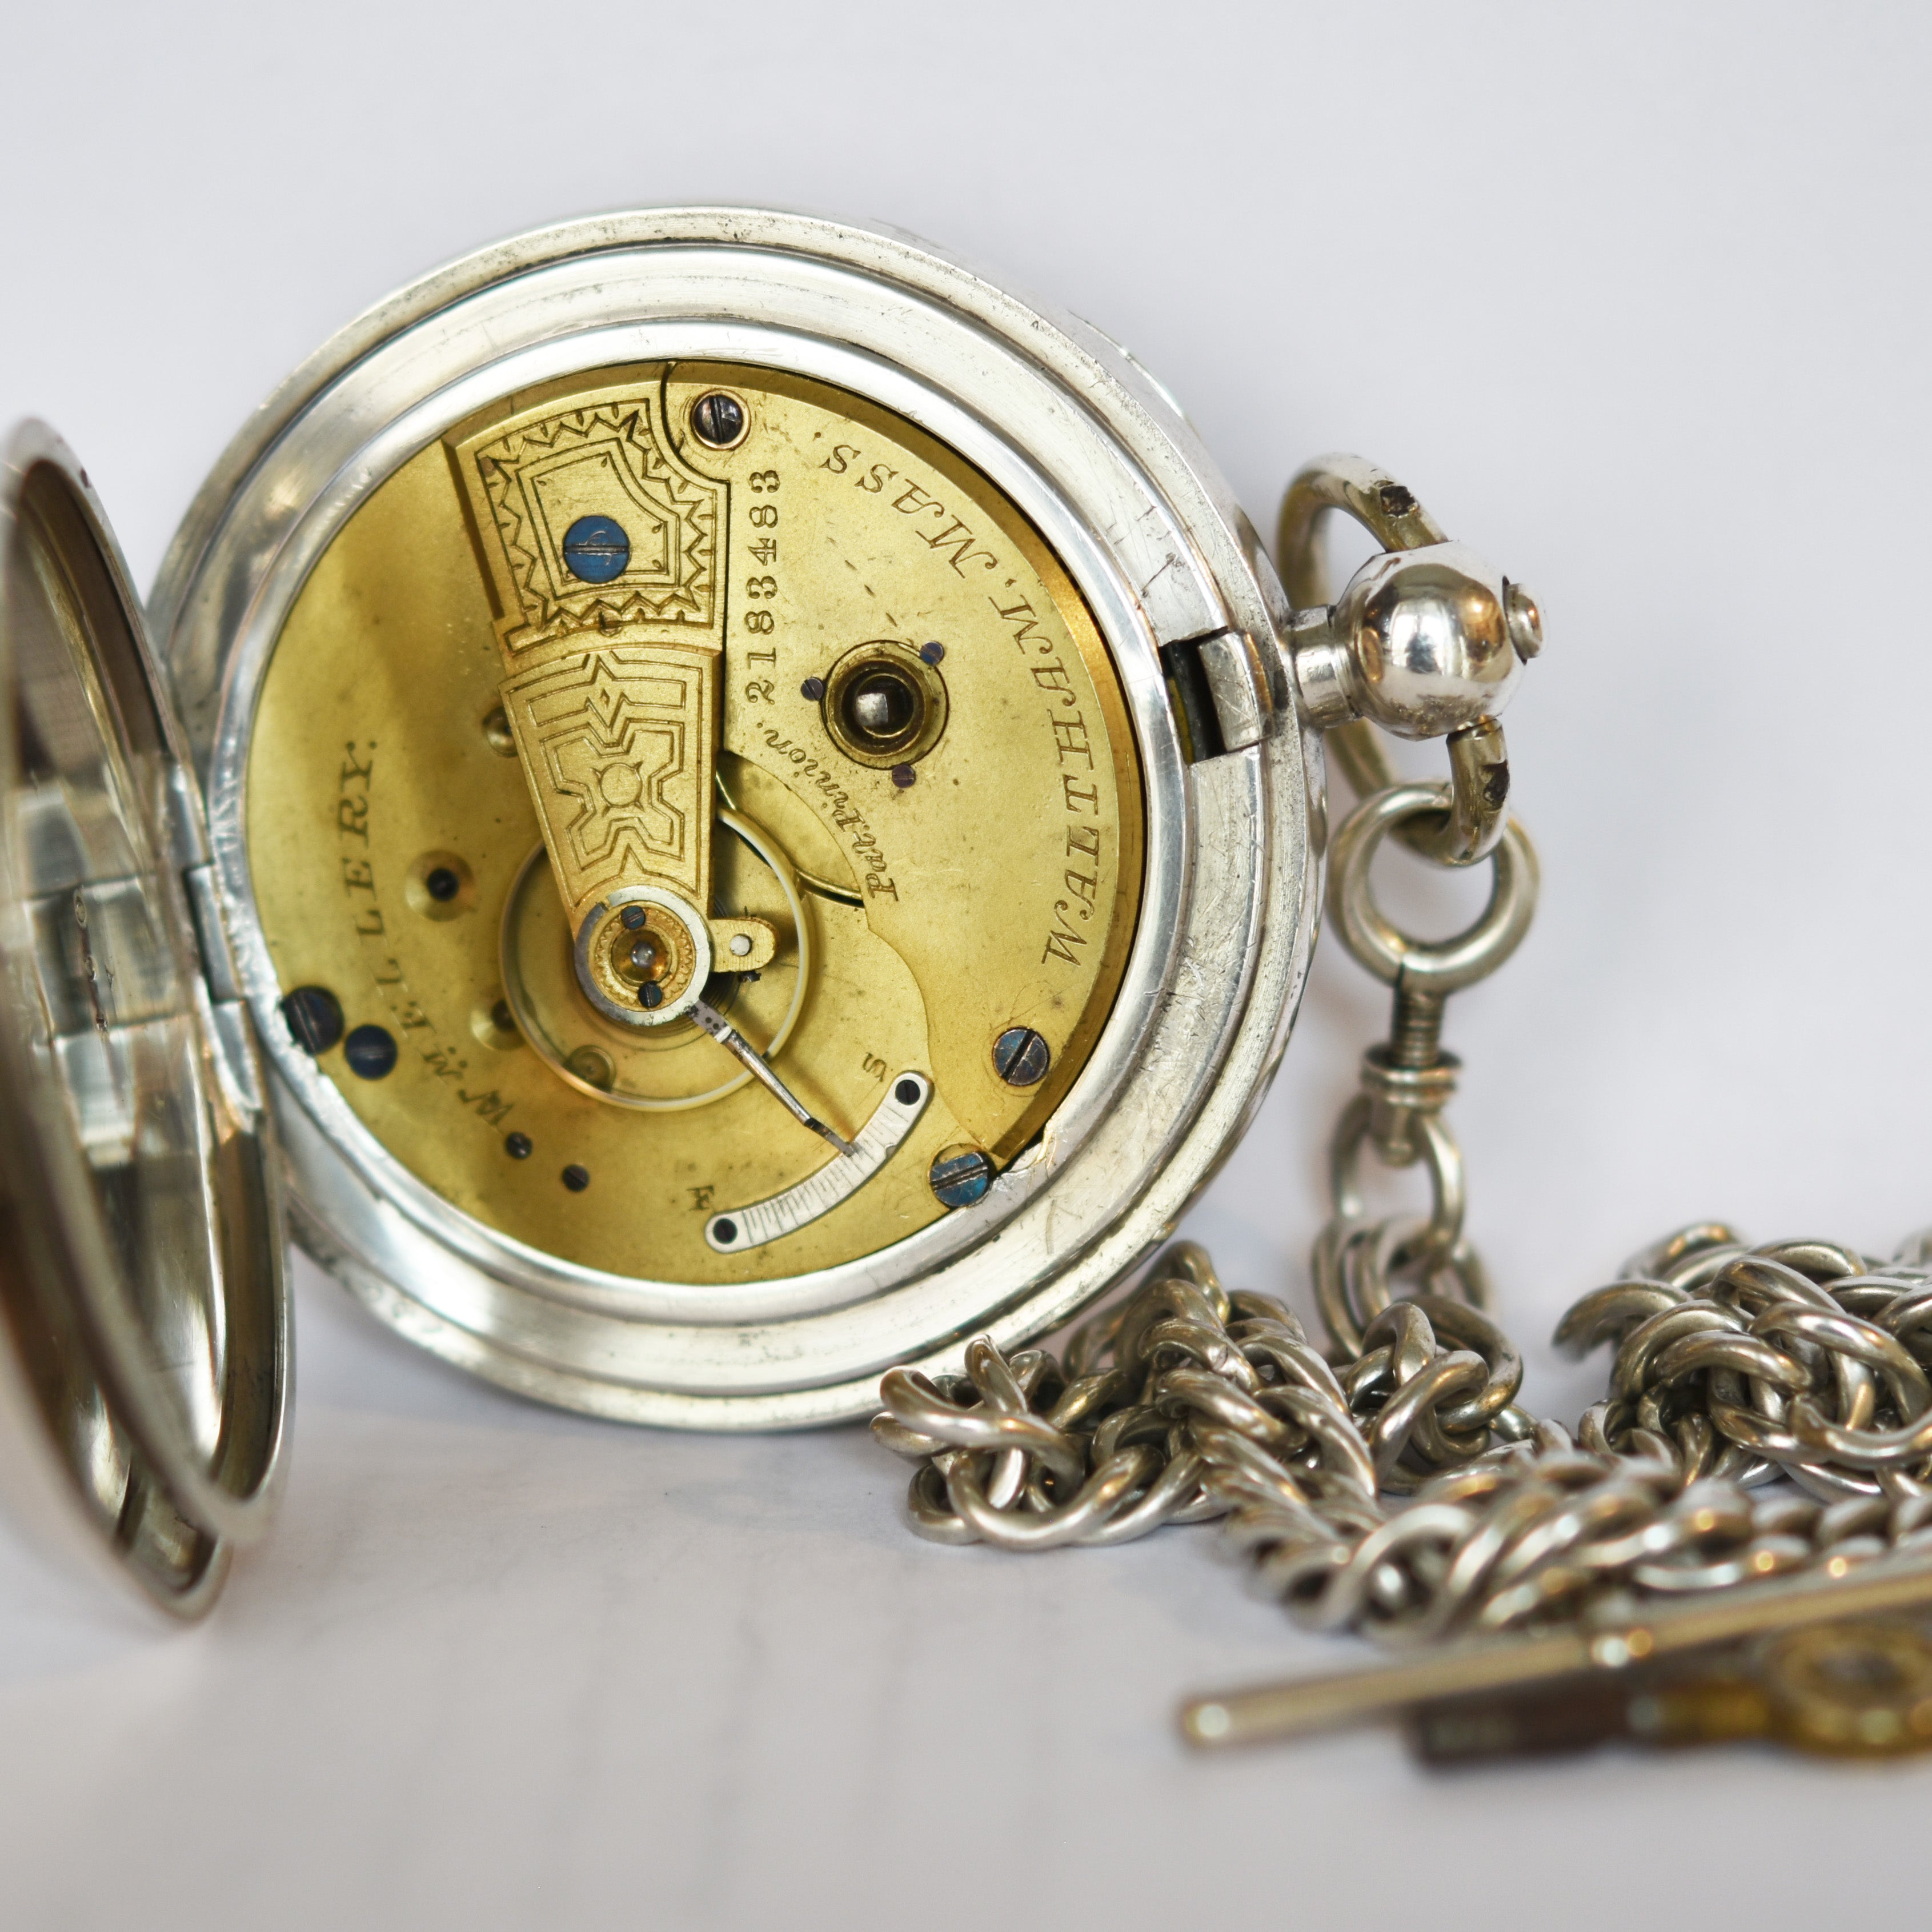 1501f09ff ... WALTHAM Silver Pocket Watch with Chain Pocket Watches - Ashton-Blakey  Vintage Watches ...